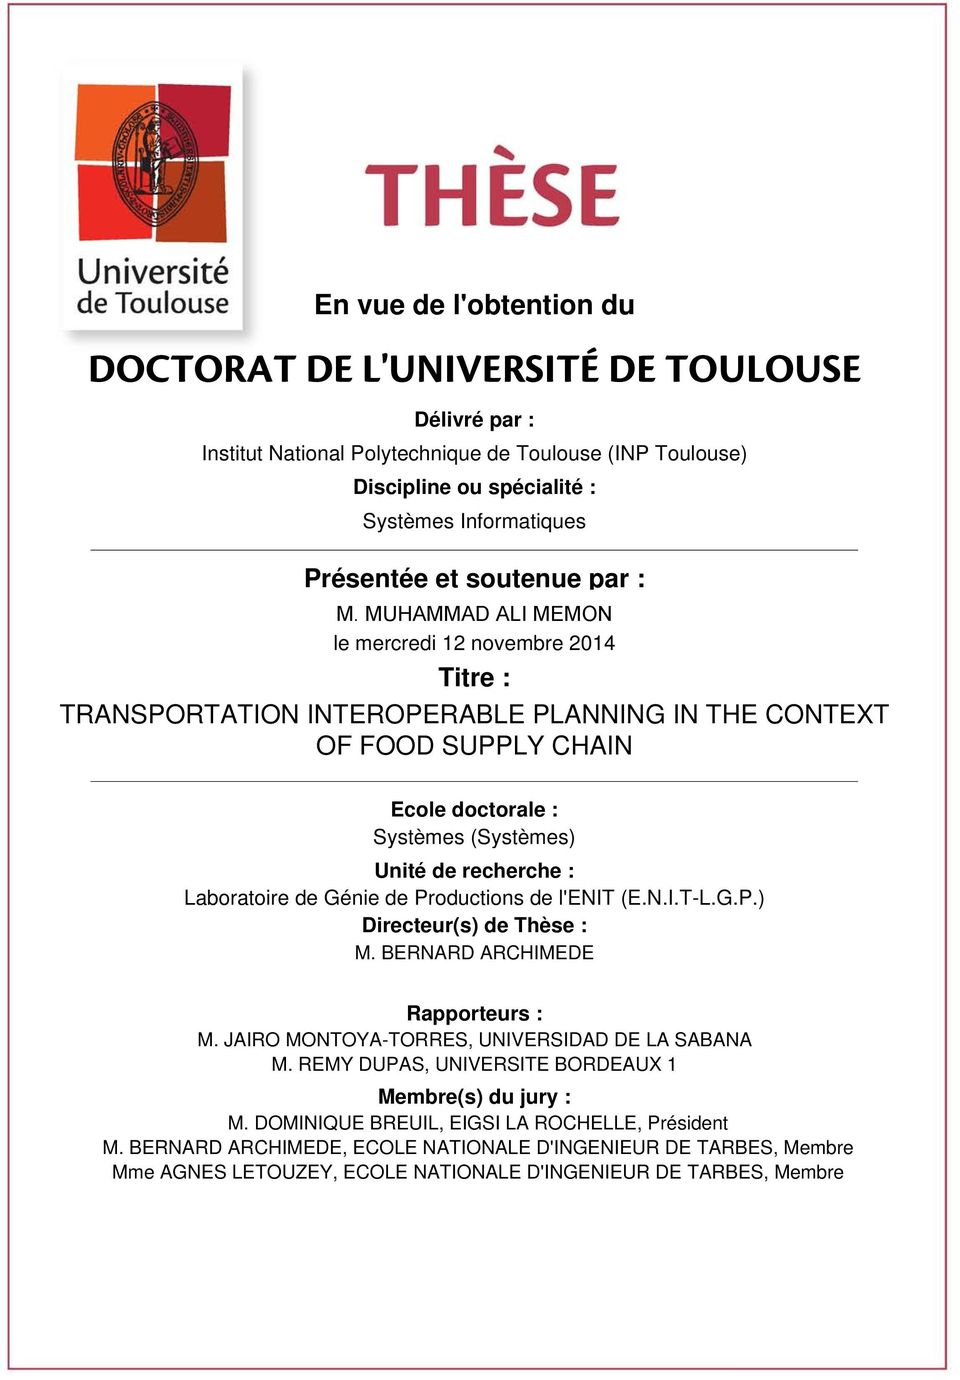 MUHAMMAD ALI MEMON le mercredi 12 novembre 2014 Titre : TRANSPORTATION INTEROPERABLE PLANNING IN THE CONTEXT OF FOOD SUPPLY CHAIN Ecole doctorale : Systèmes (Systèmes) Unité de recherche :